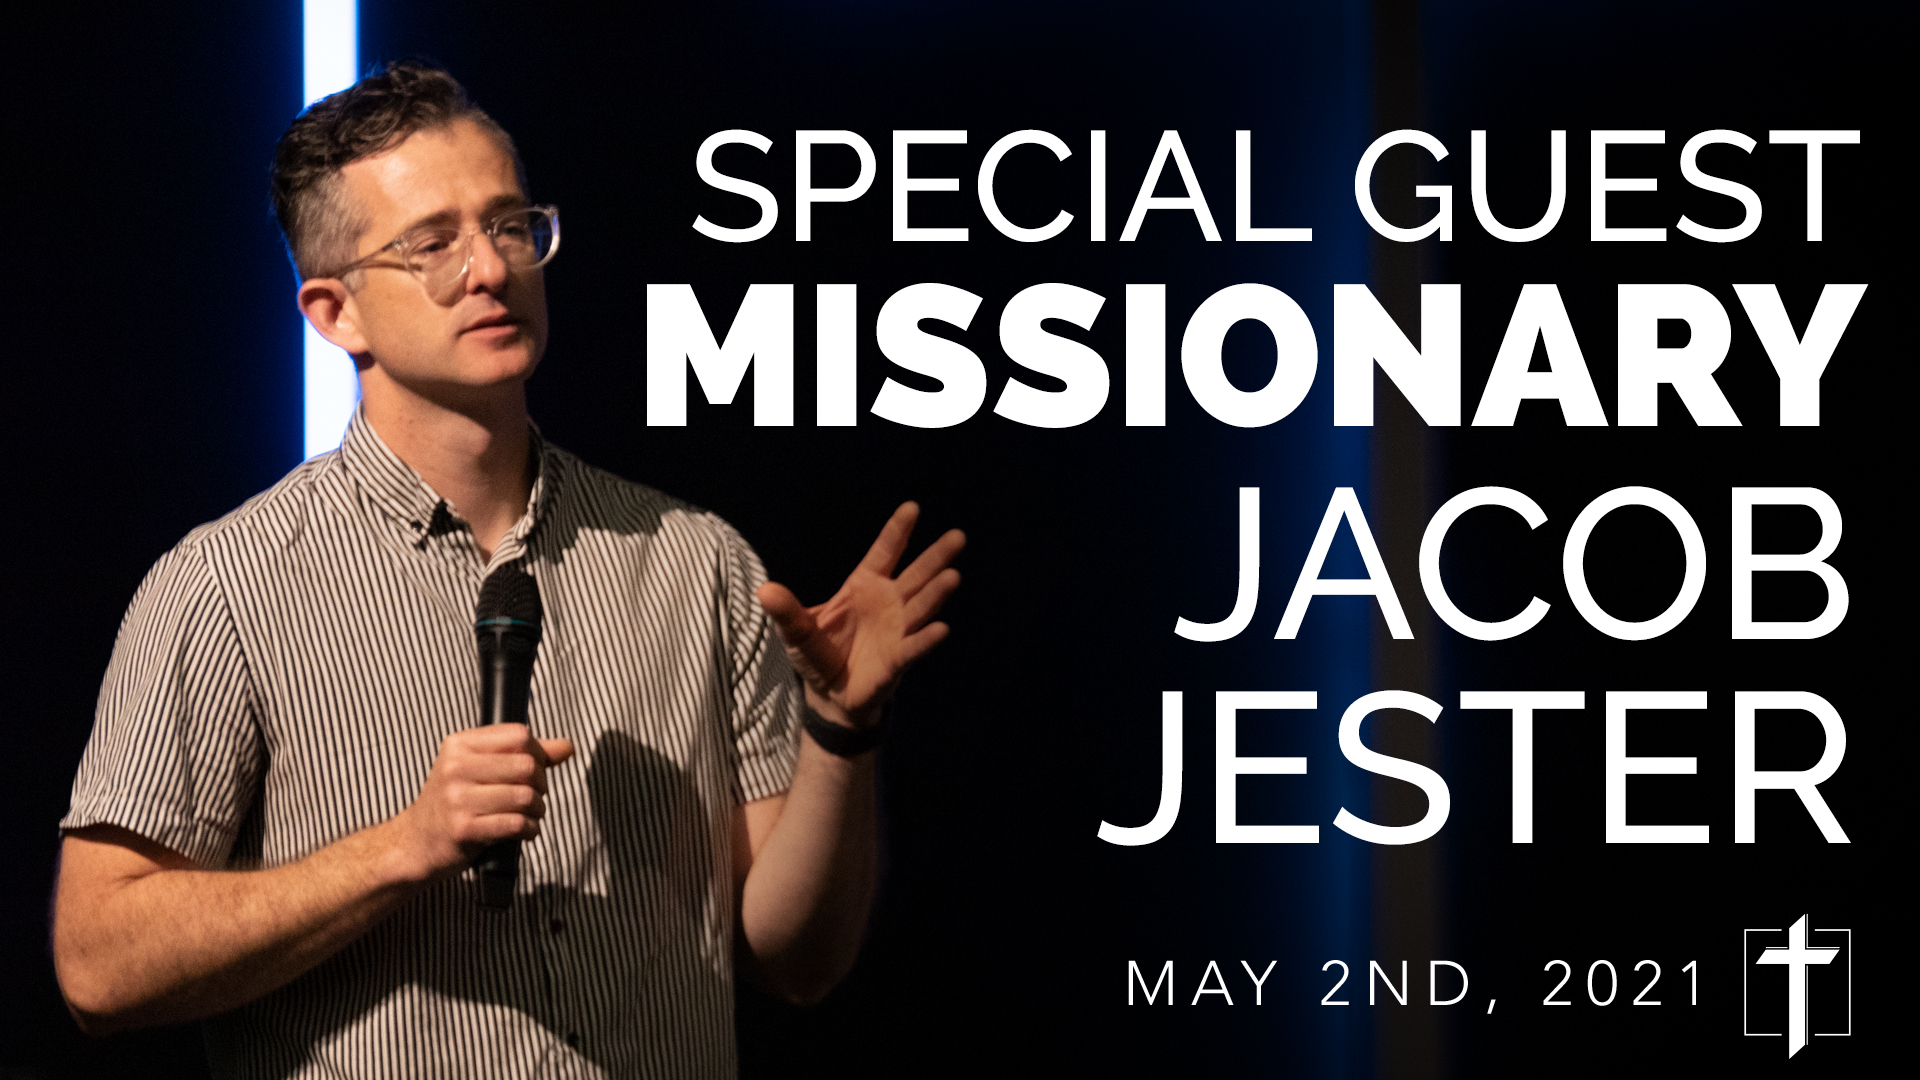 SPECIAL GUEST SPEAKER - MISSIONARY